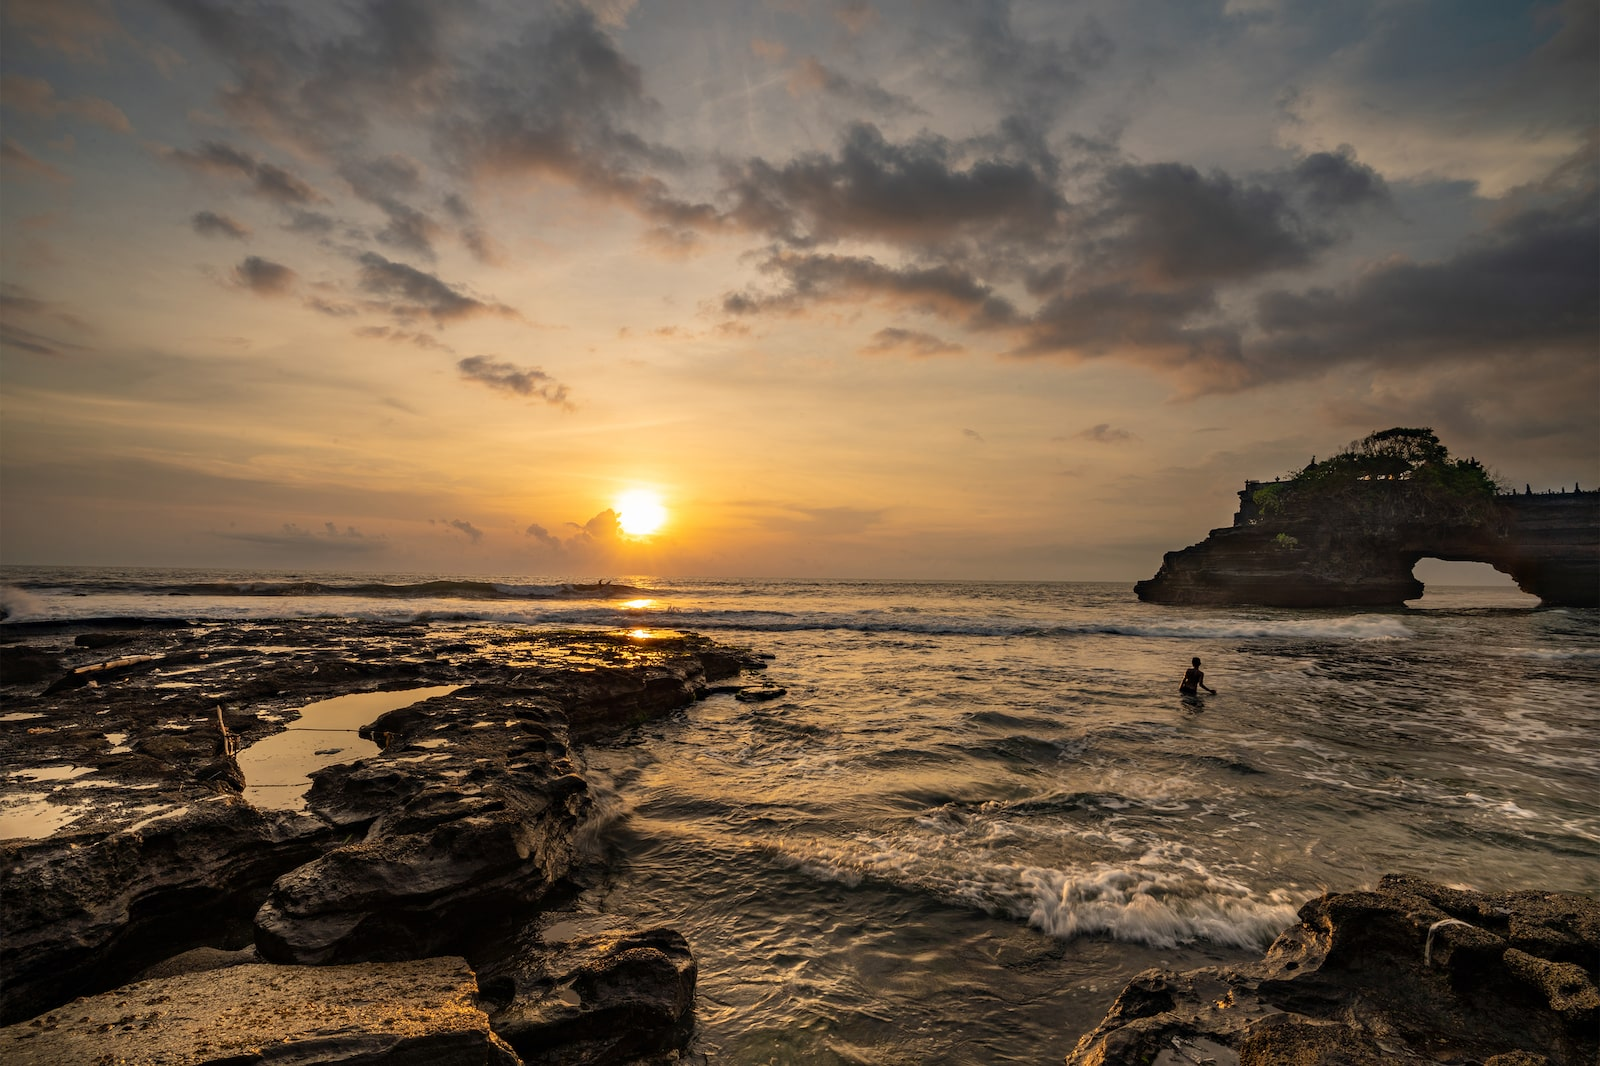 Sunset at sea Tanah Lot Temple